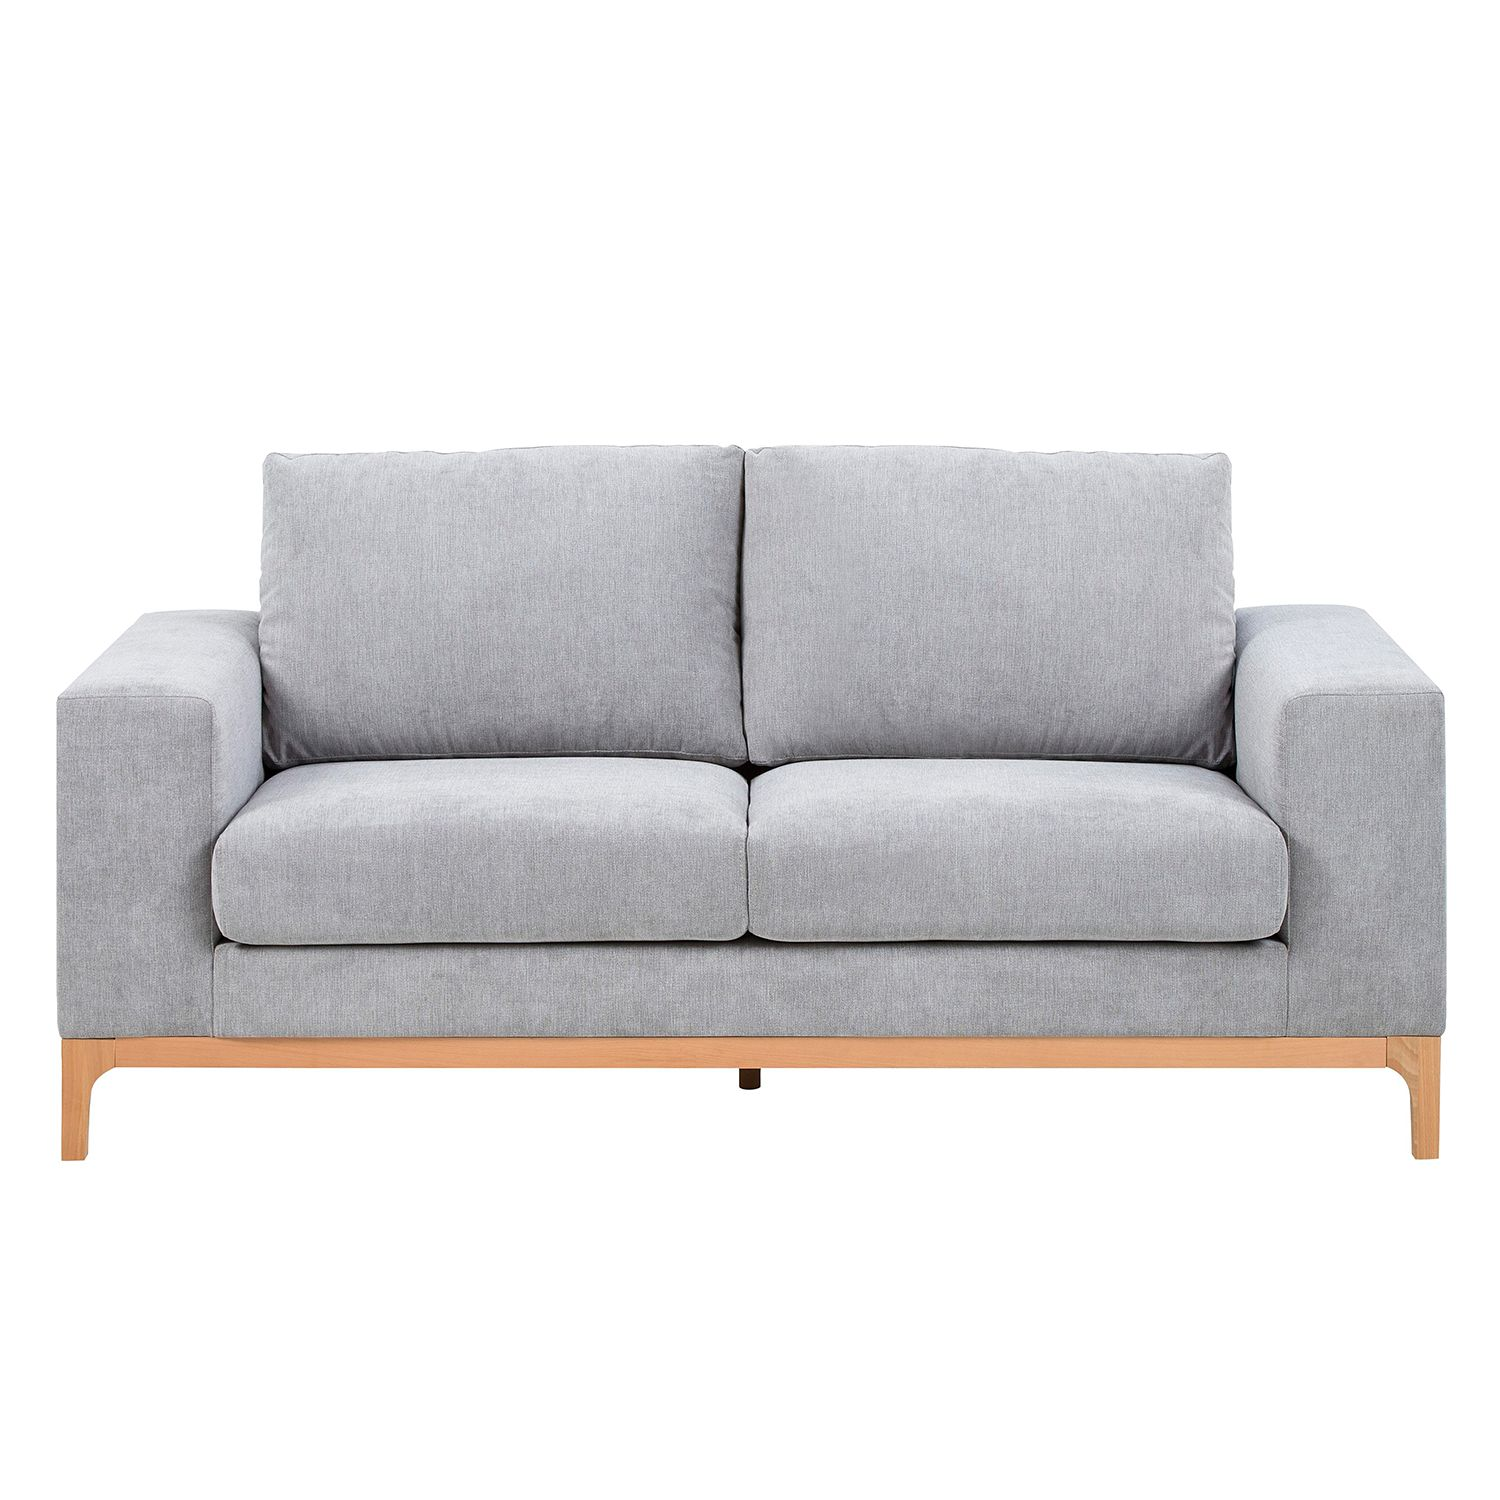 Couch Microfaser Microfaser Couch Microfaser Couch With Microfaser Couch